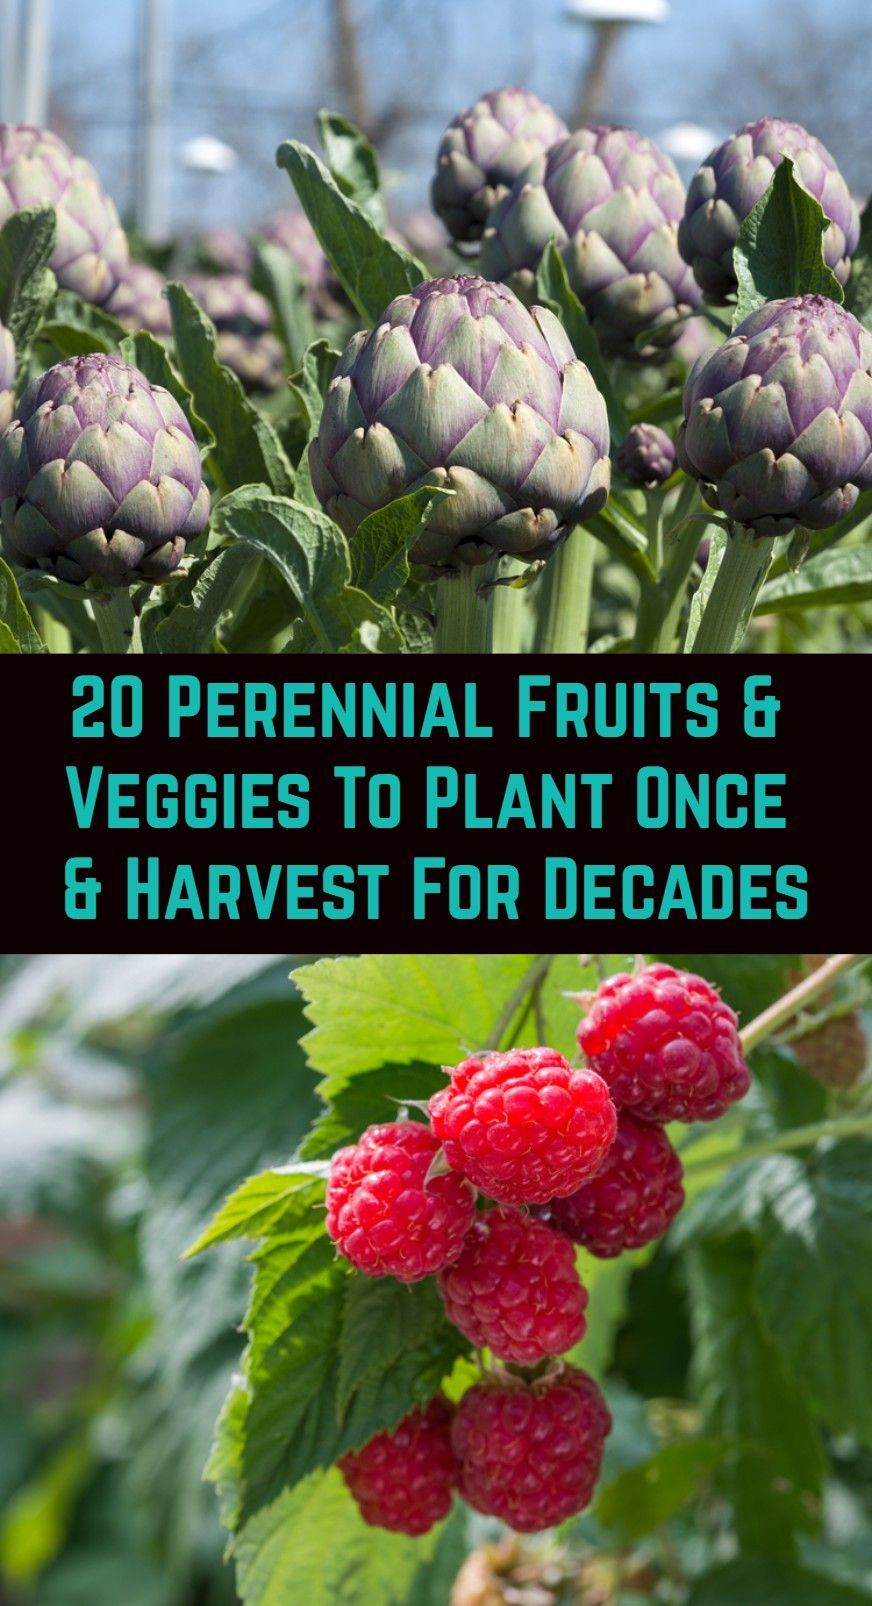 20 Perennial Fruits & Veggies To Plant Once & Harv